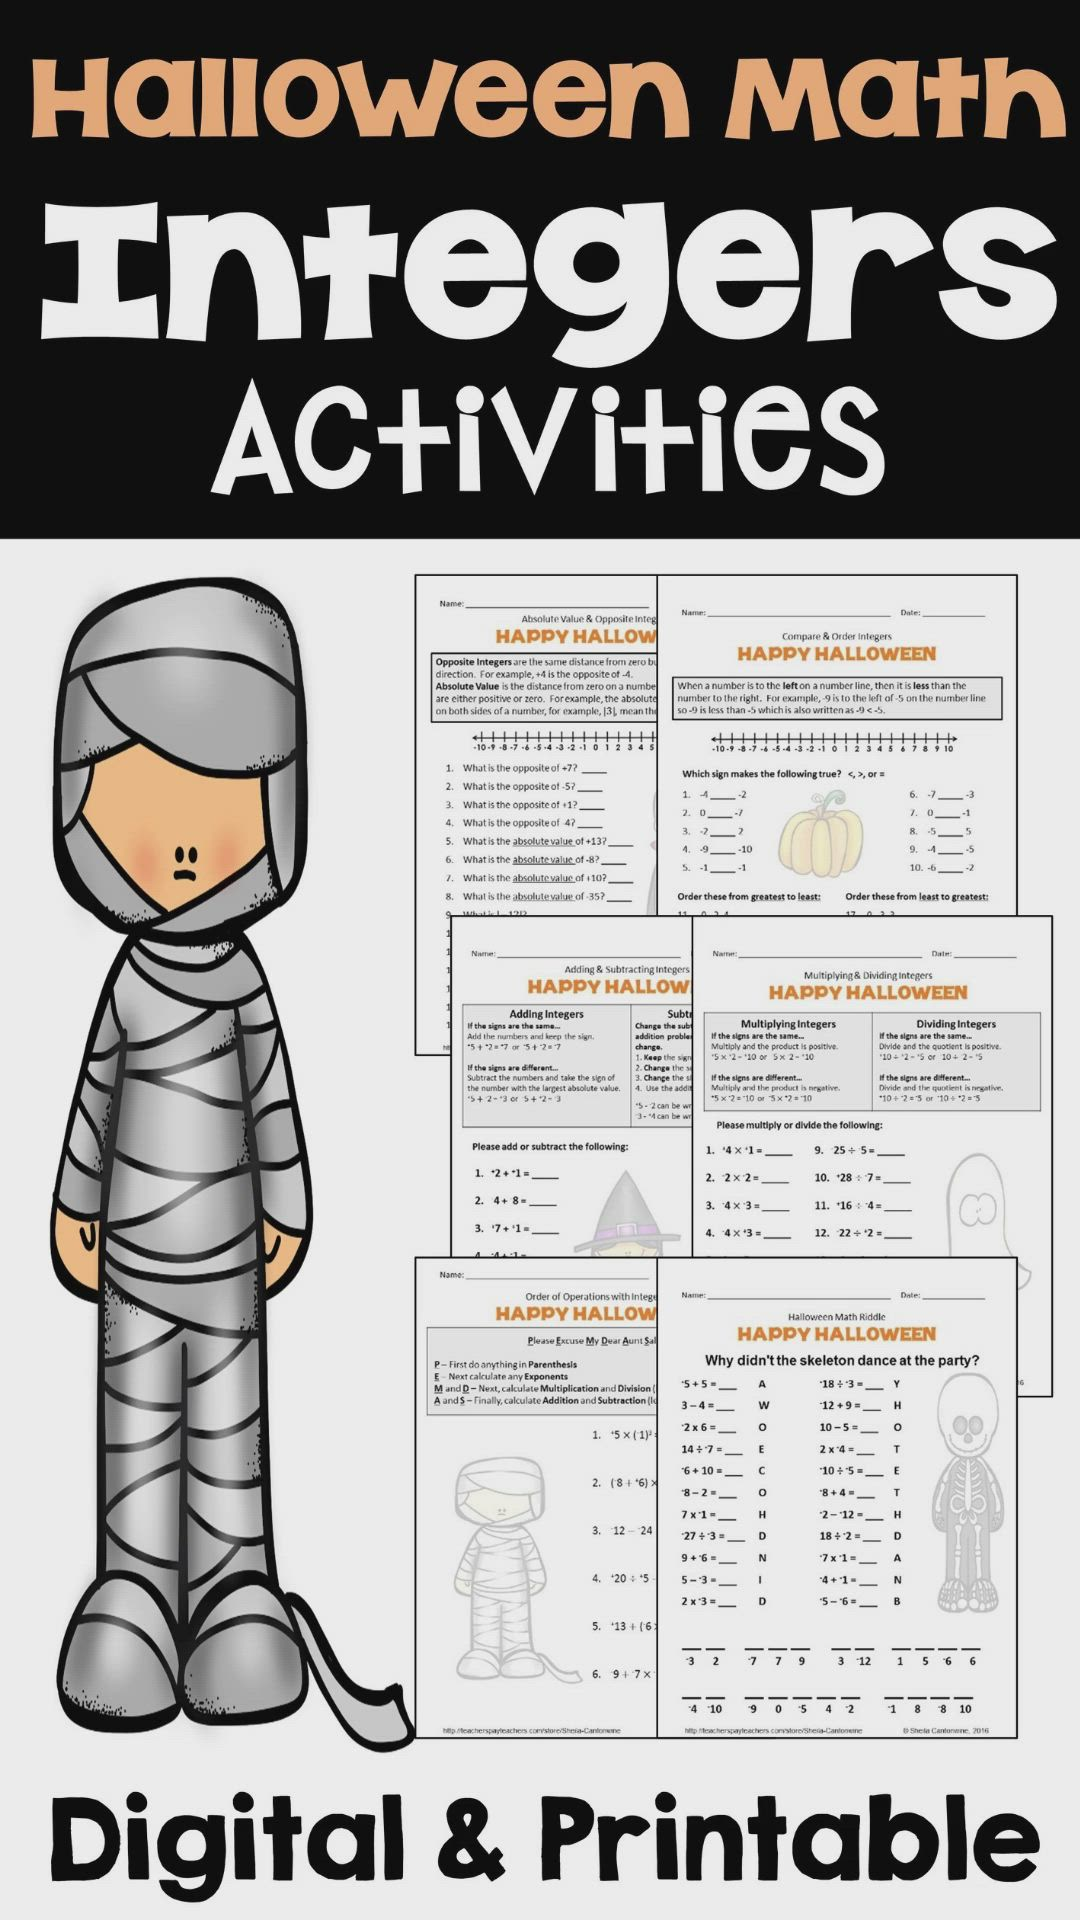 Halloween Integers Worksheets Video Video Integers Worksheet Integers Math Activities Fun printable math worksheets for 7th